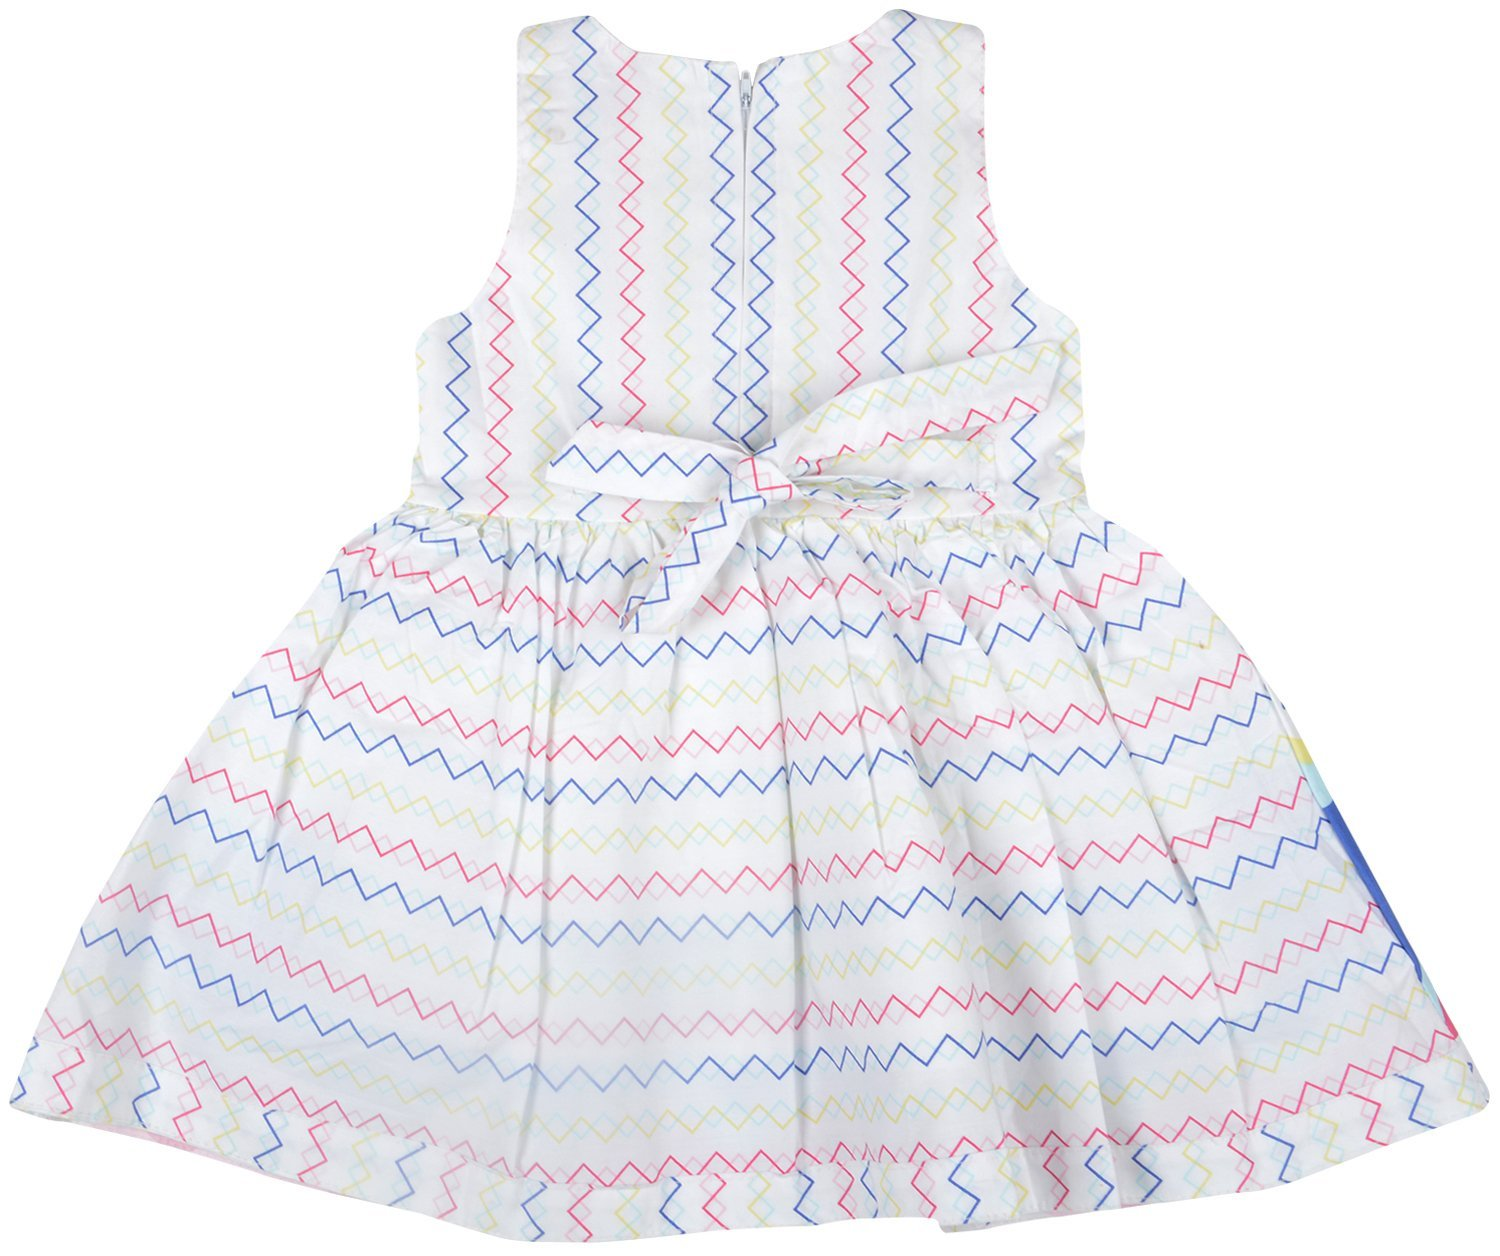 2ae9f374a Kuchipoo Baby Girls  100% Cotton Frock (KUC-FRK-138 Blue and White ...